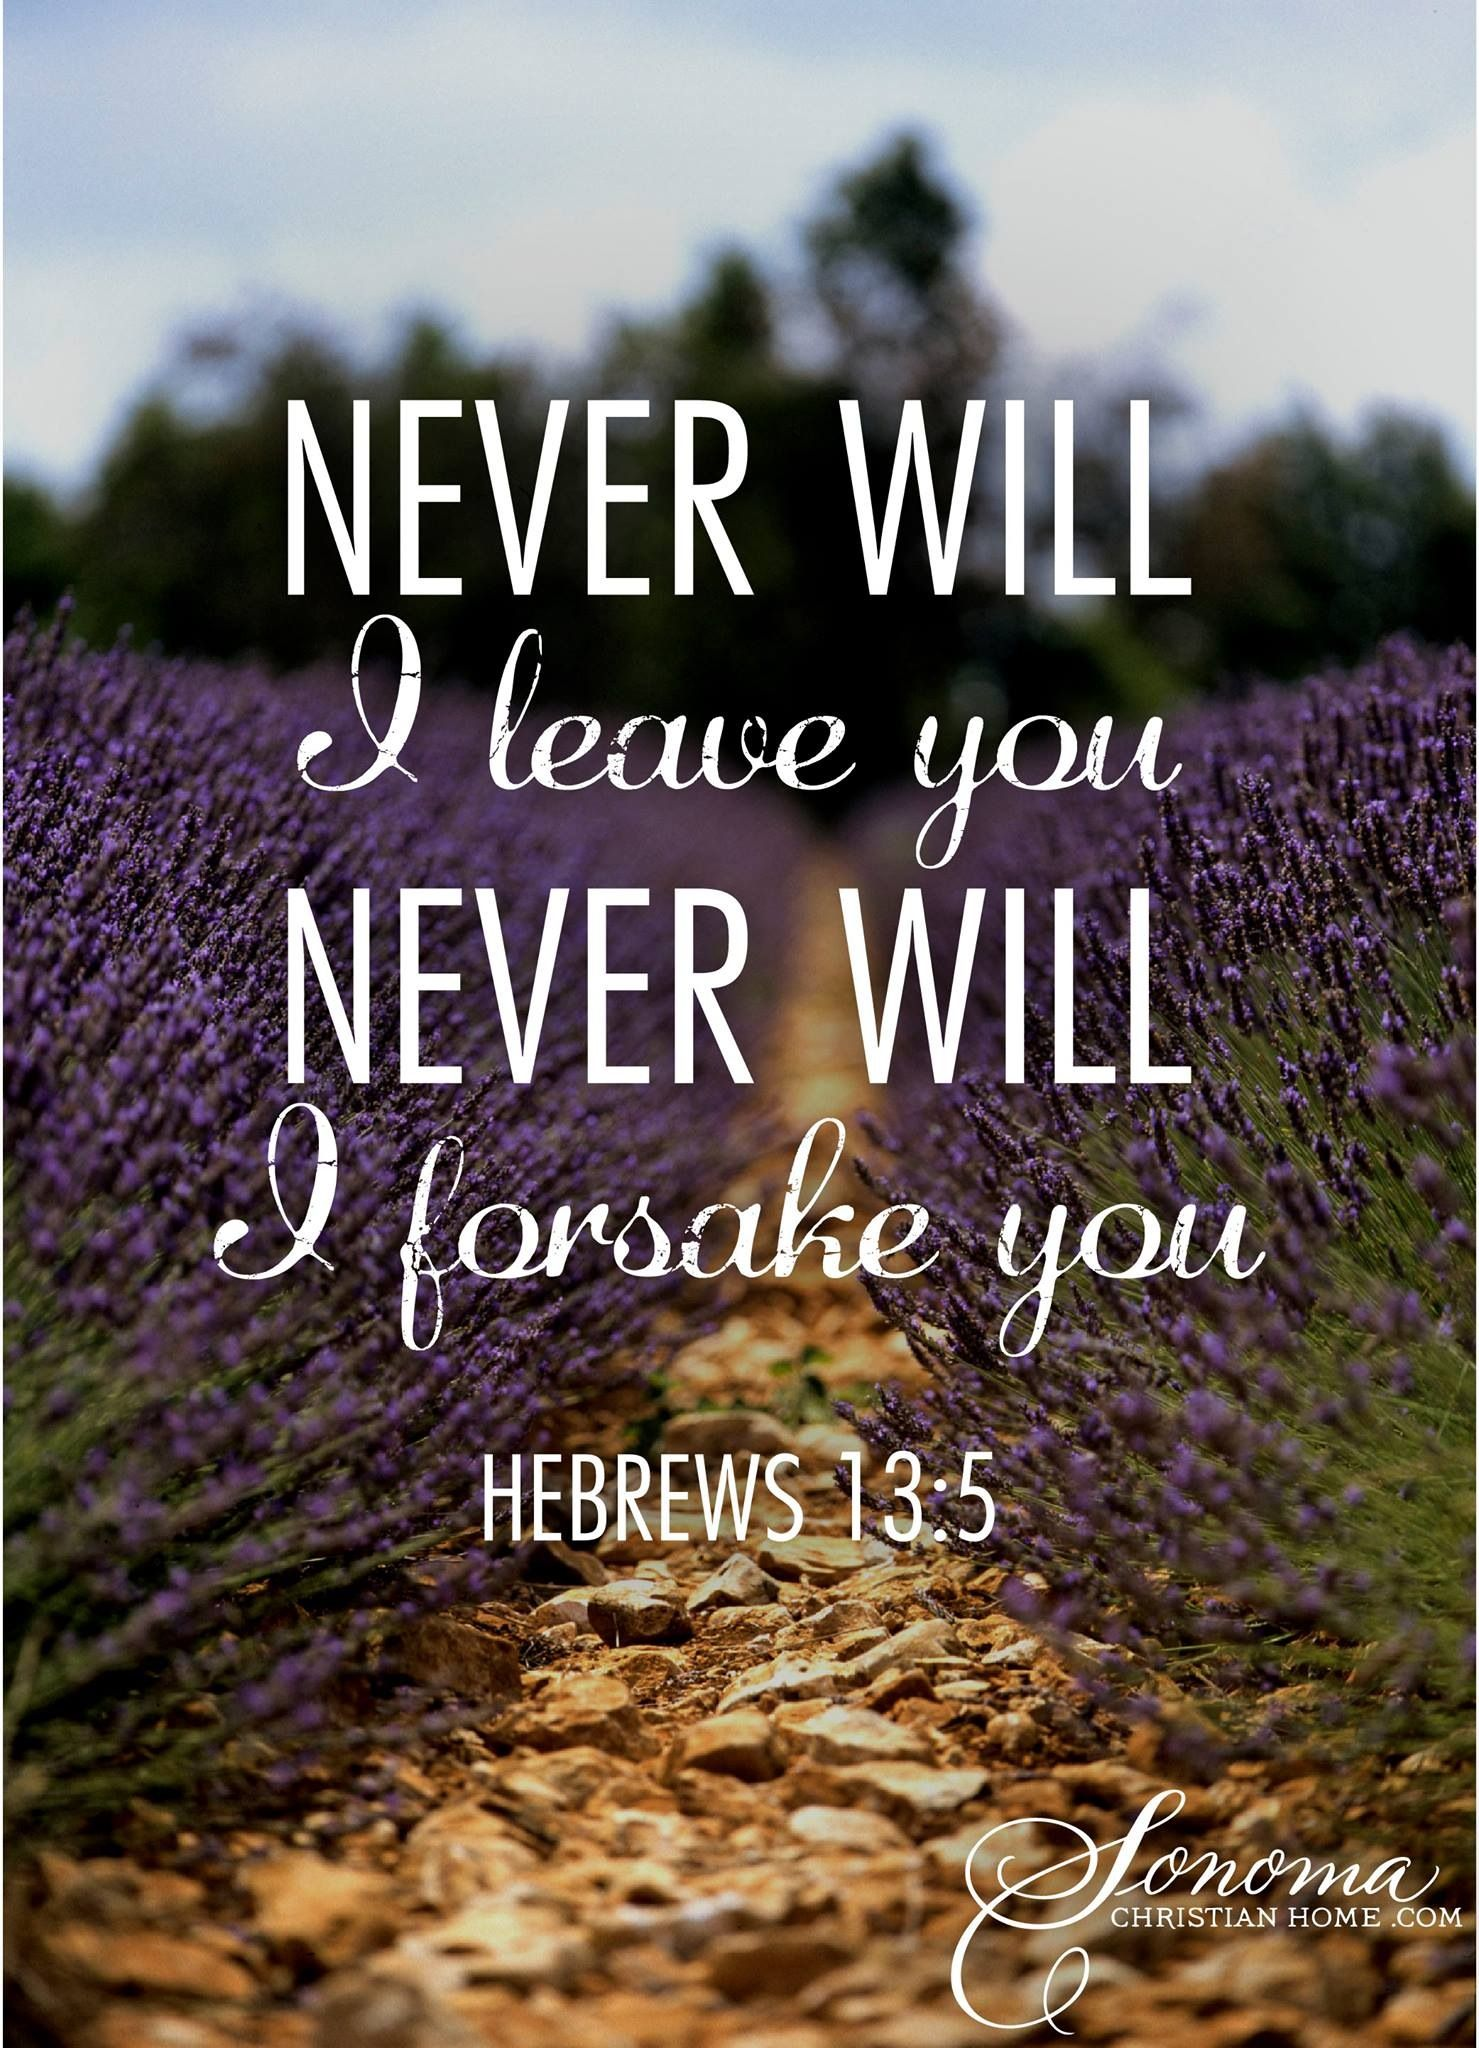 Never Will O Leave You Never Will I Forsake You. Hebrews